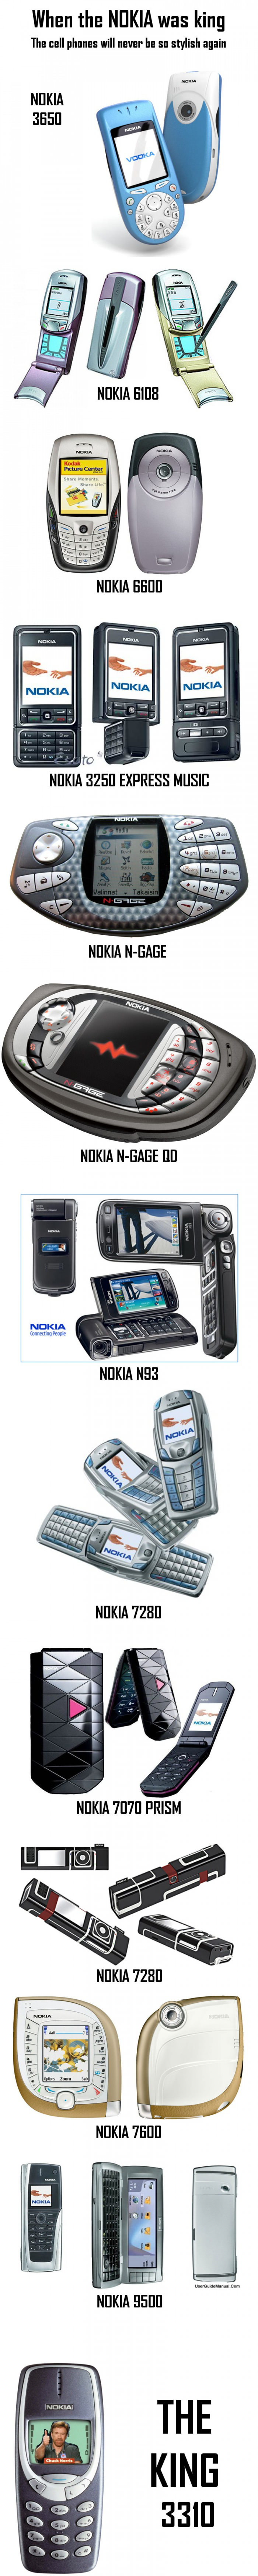 When the Nokia was King